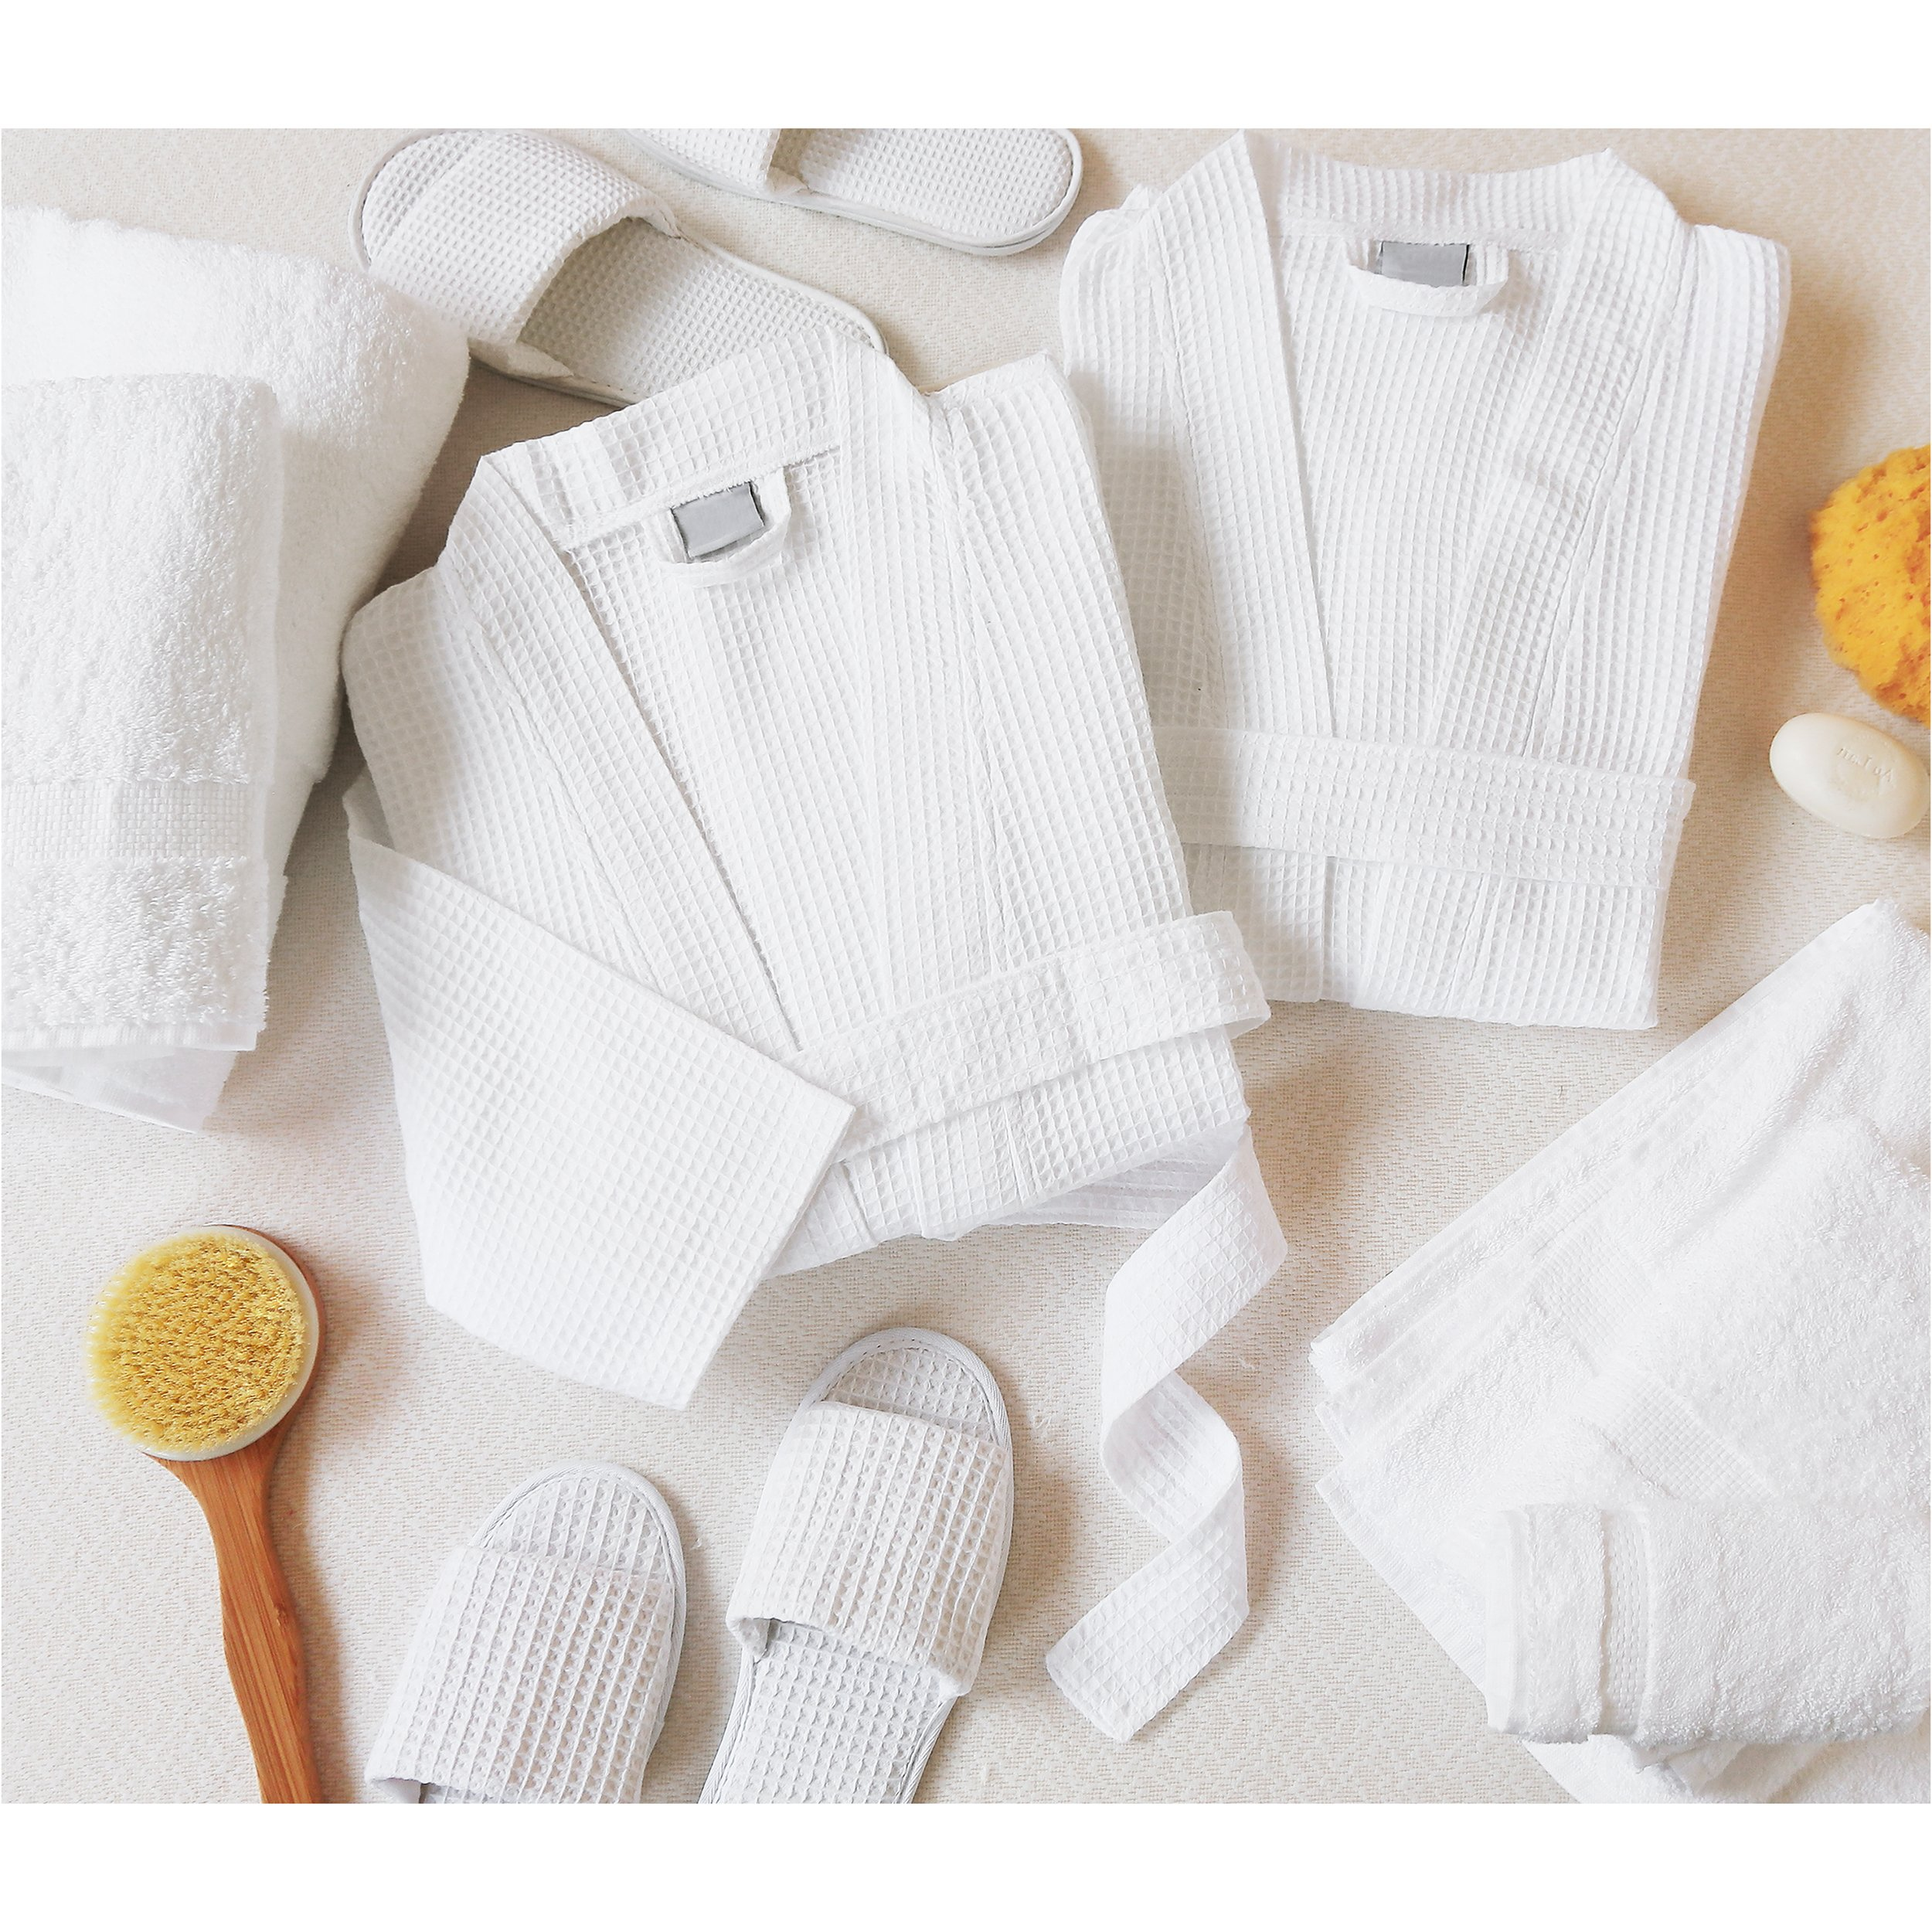 Luxor Linens Luxury 100% Cotton Giovanni Spa Set - Robe, Slippers & 3-Piece Towel Set - 2 Sets - Perfect for a Relaxing Spa Day at Home! by Luxor Linens (Image #2)